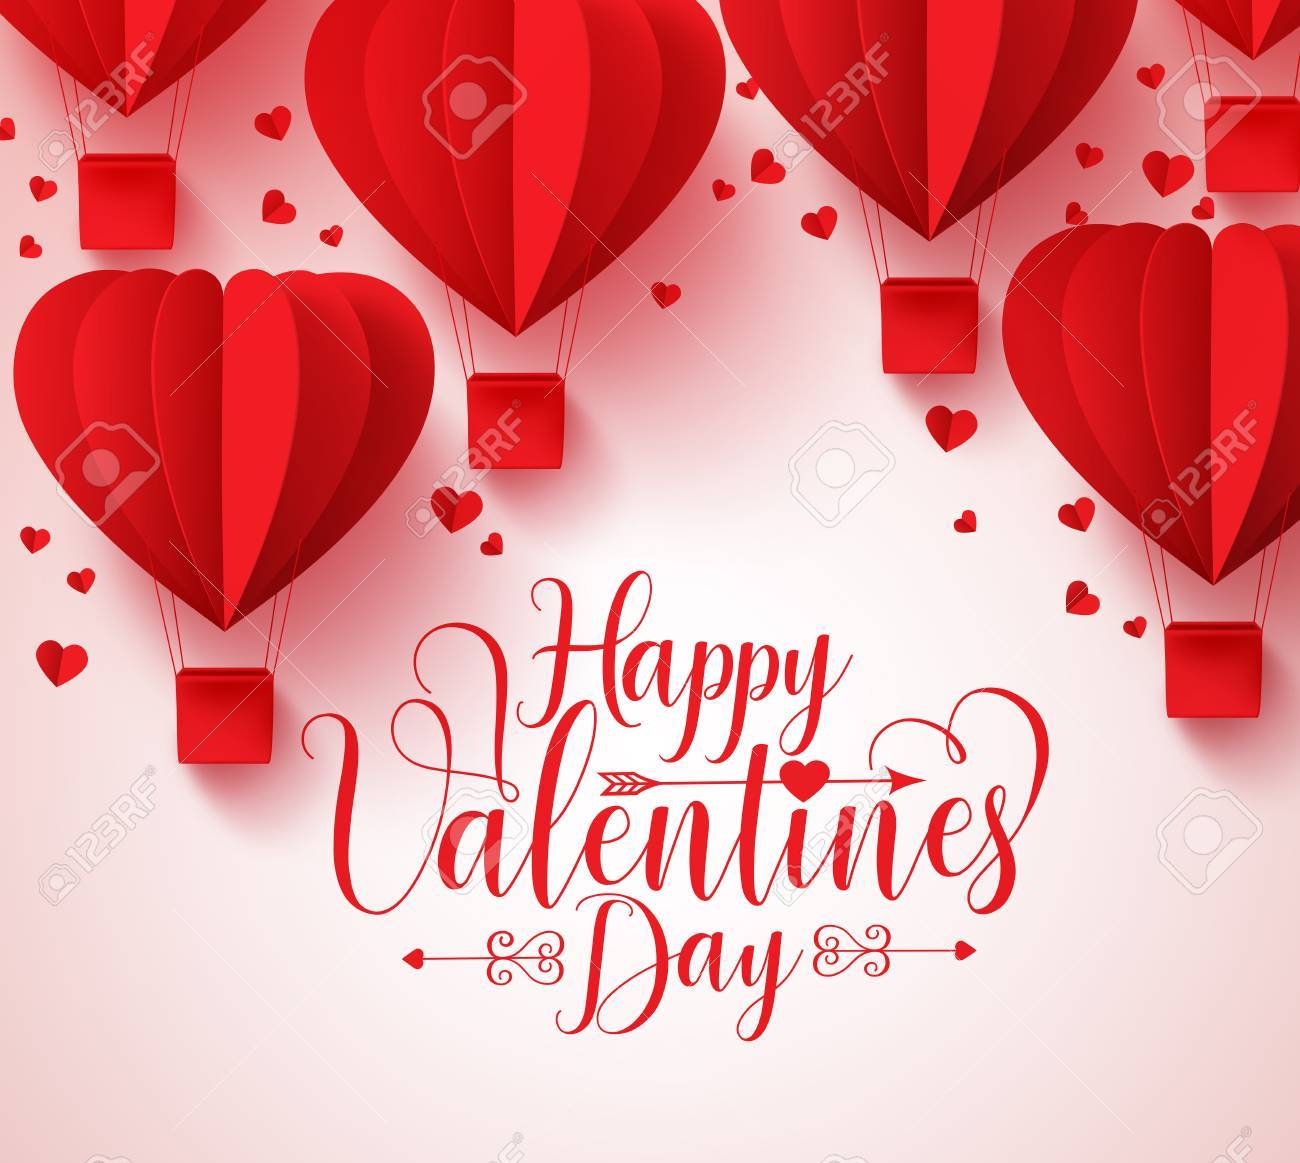 Happy Valentines Day Vector Greetings Card Design With Paper